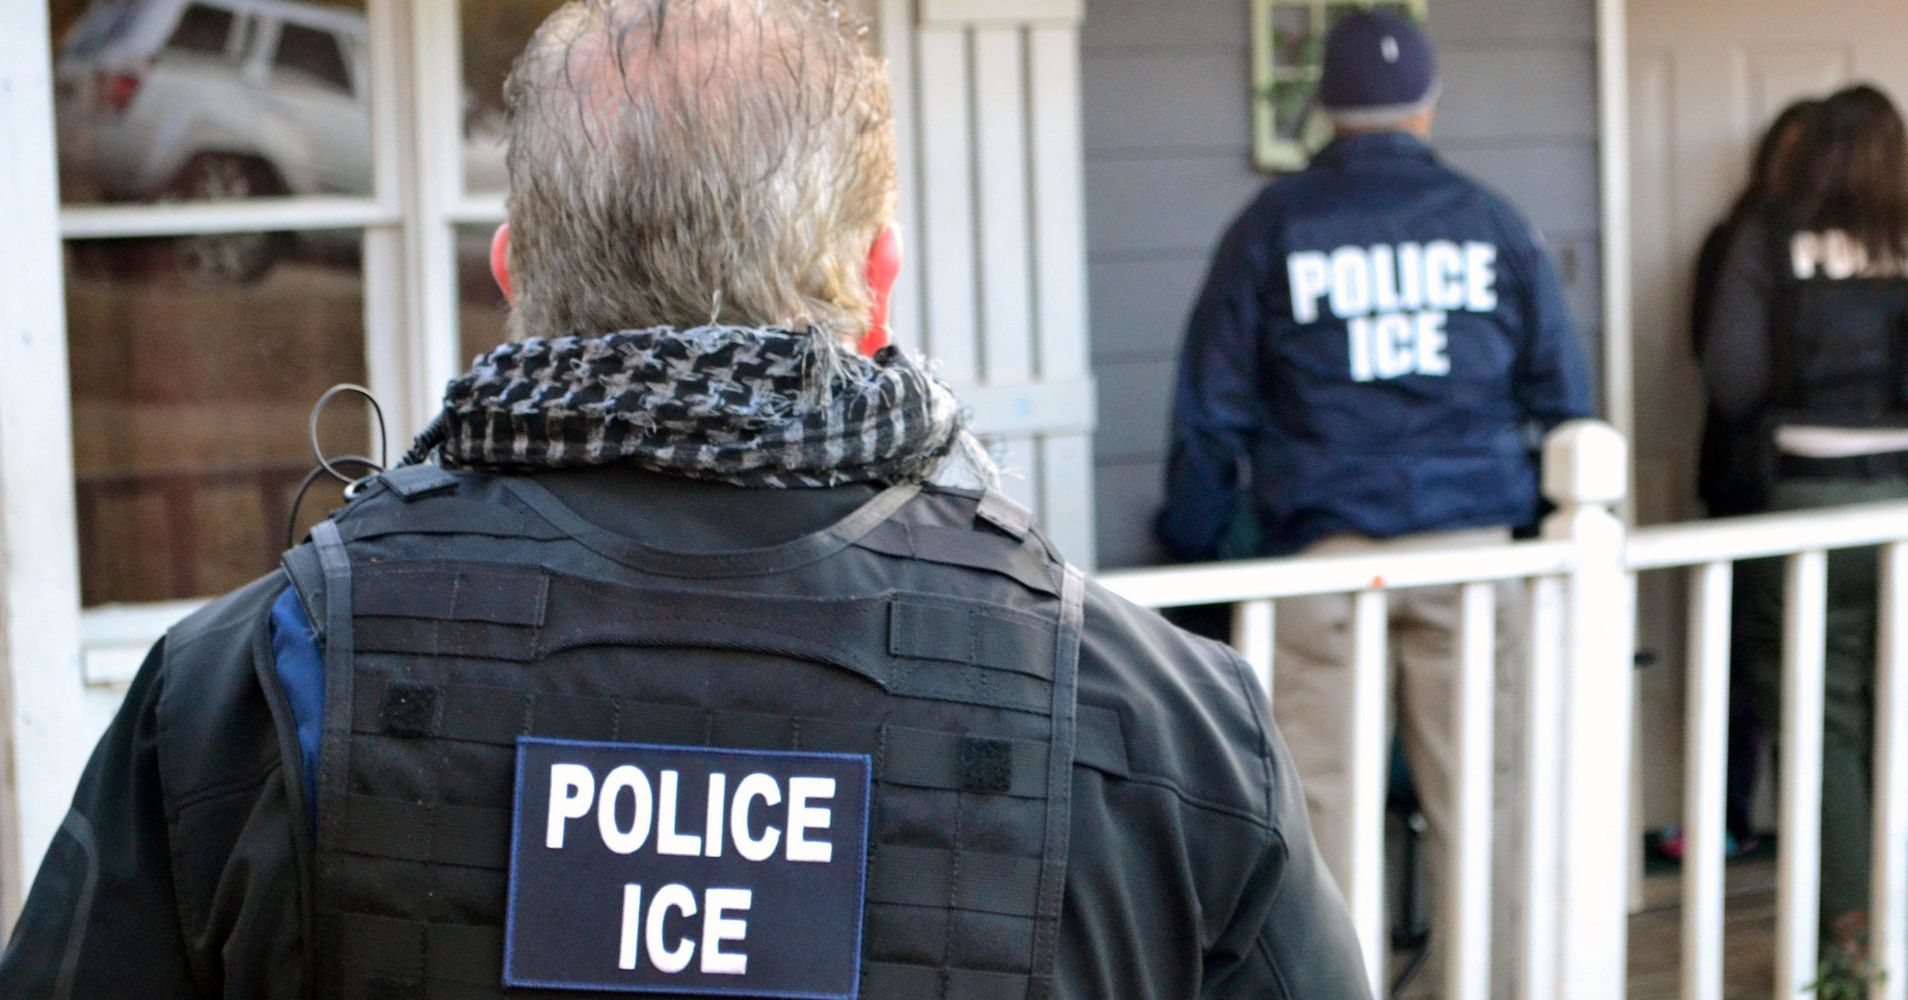 ICE Spokesman Quits, Accuses Trump Administration Of Spreading Fake News On Immigration